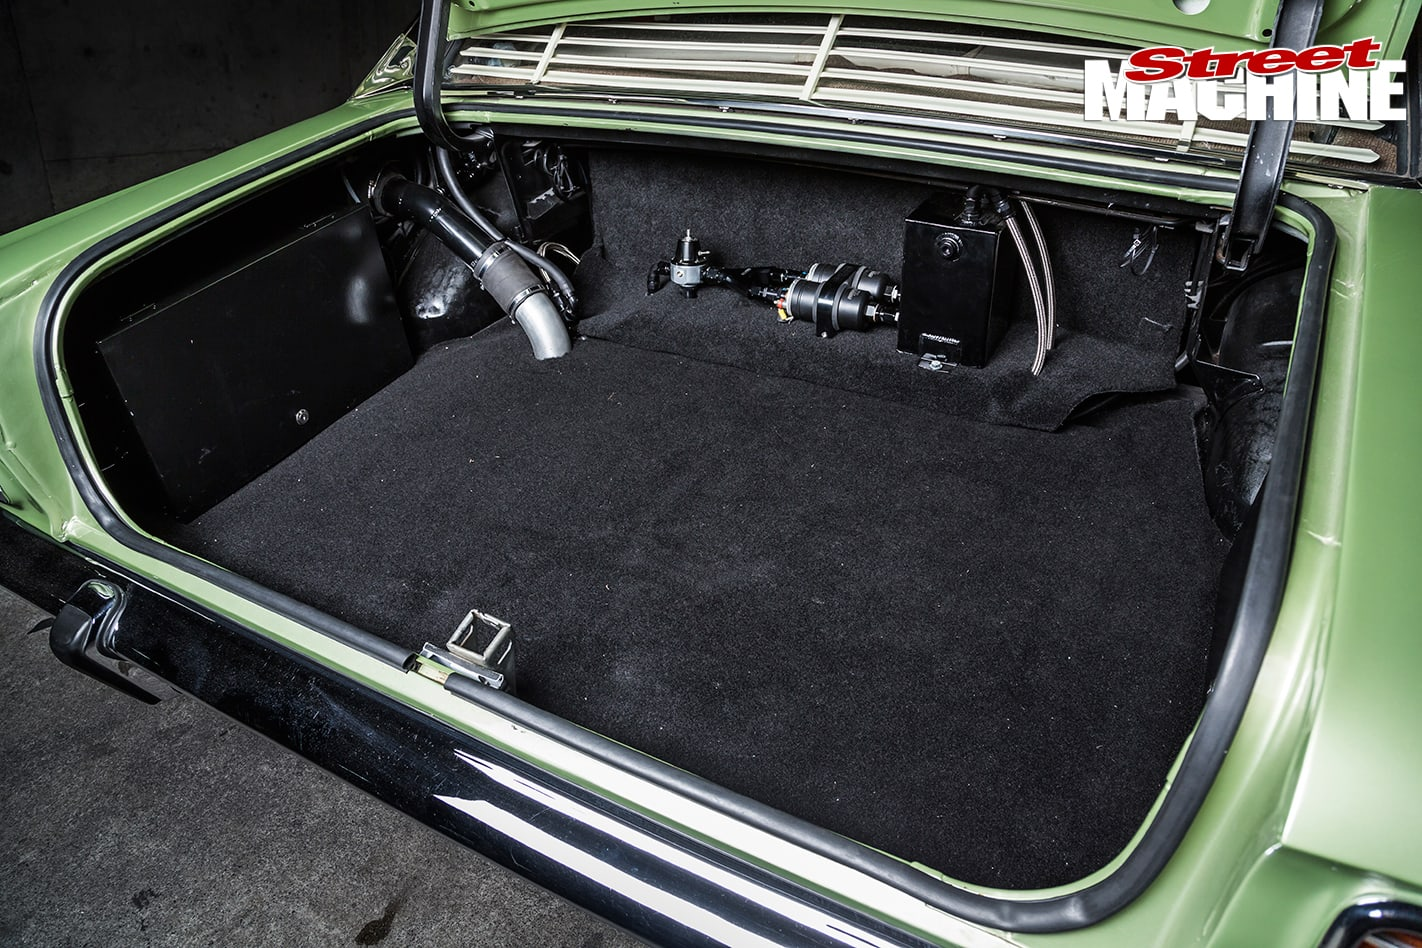 LS1-XW-Ford -Fairmont -GS-2-boot